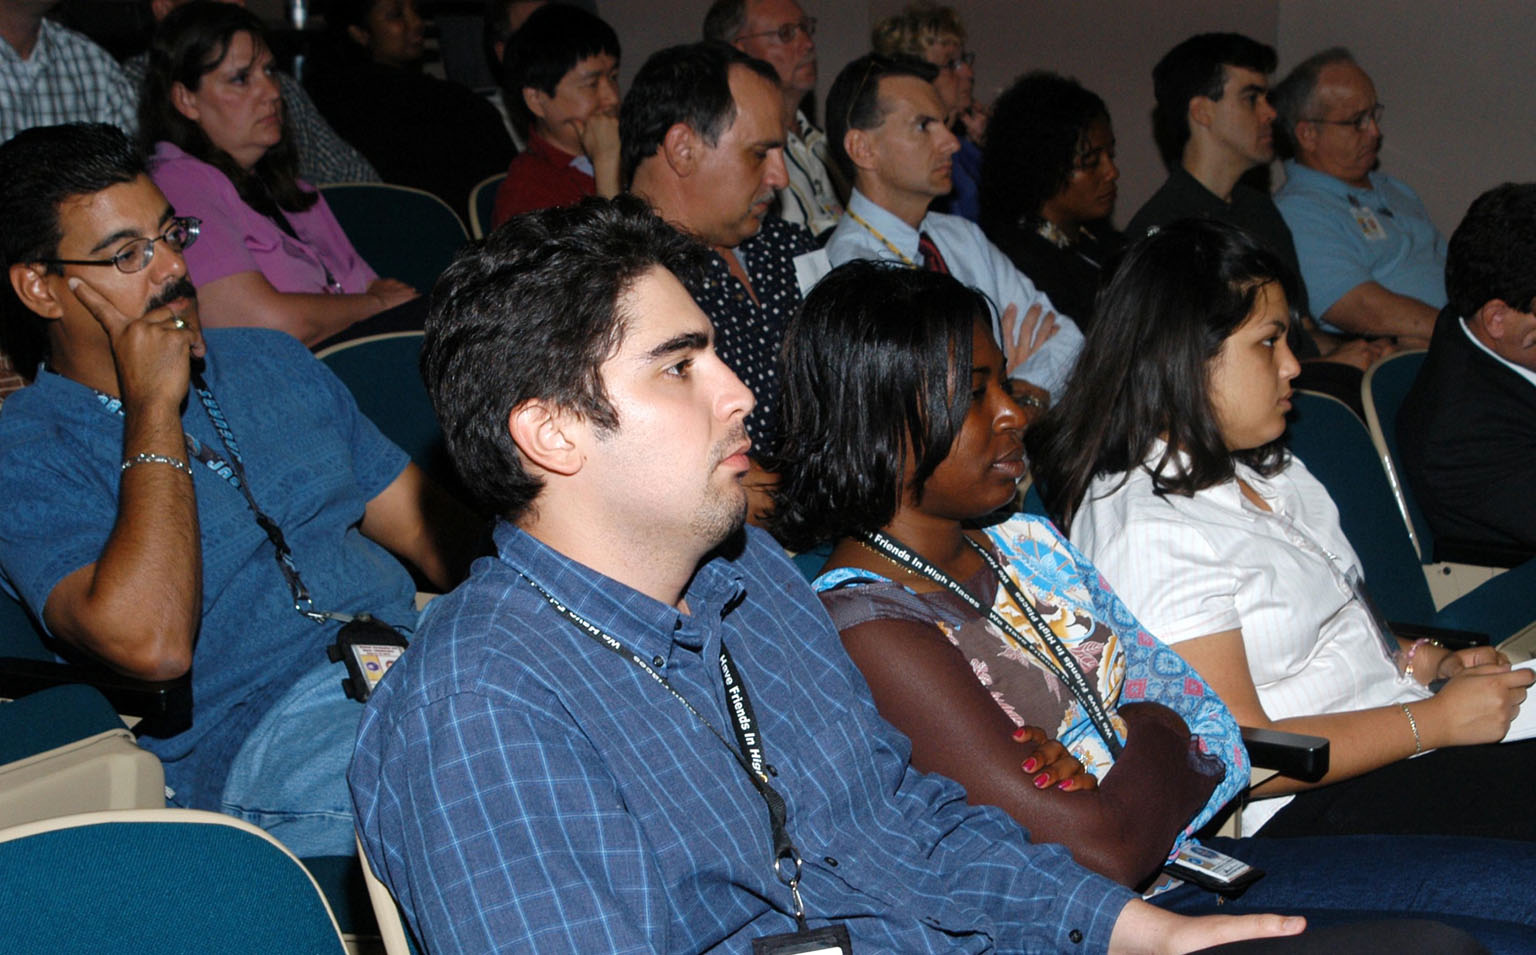 KENNEDY SPACE CENTER, FLA. -- KSC employees assemble in the Training Auditorium for a Culture Change Process All Hands Meeting. The purpose of the meeting was for employees to gain further insight into the Agency?s Vision for Space Exploration and the direction cultural change will take at KSC in order to assume its role within this vision. Panel members included James W. Kennedy, KSC director; Jim Jennings, Deputy Associate Administrator for Institutions and Asset Management; Lynn Cline, Deputy Associate Administrator for Space Flight; Bob Sieck, former Director of Space Shuttle Processing at KSC; and Jim Wetherbee, astronaut and Technical Assistant to the Director of Safety and Mission Assurance at the Johnson Space Center. Following their remarks, members of the panel entertained questions and comments from the audience.